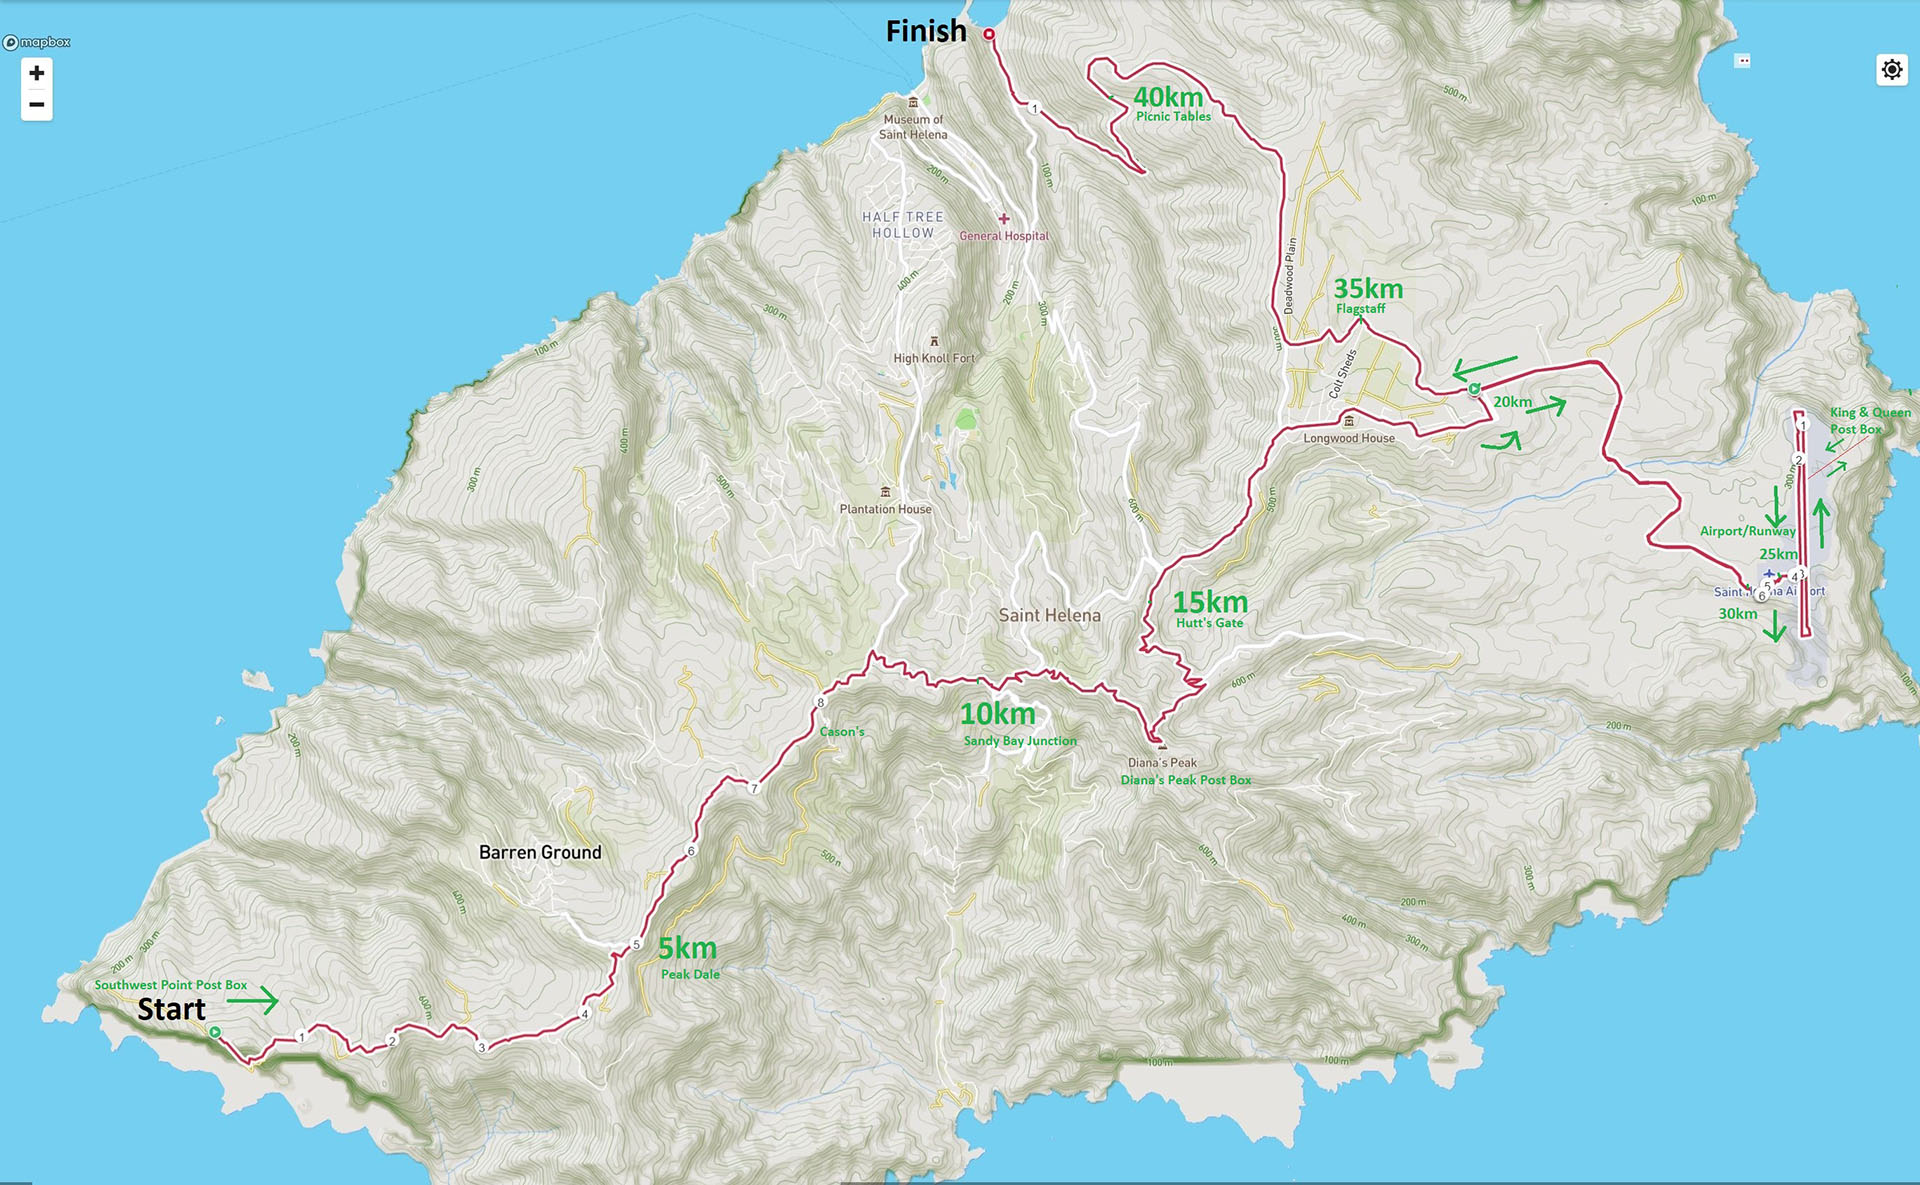 St Helena route